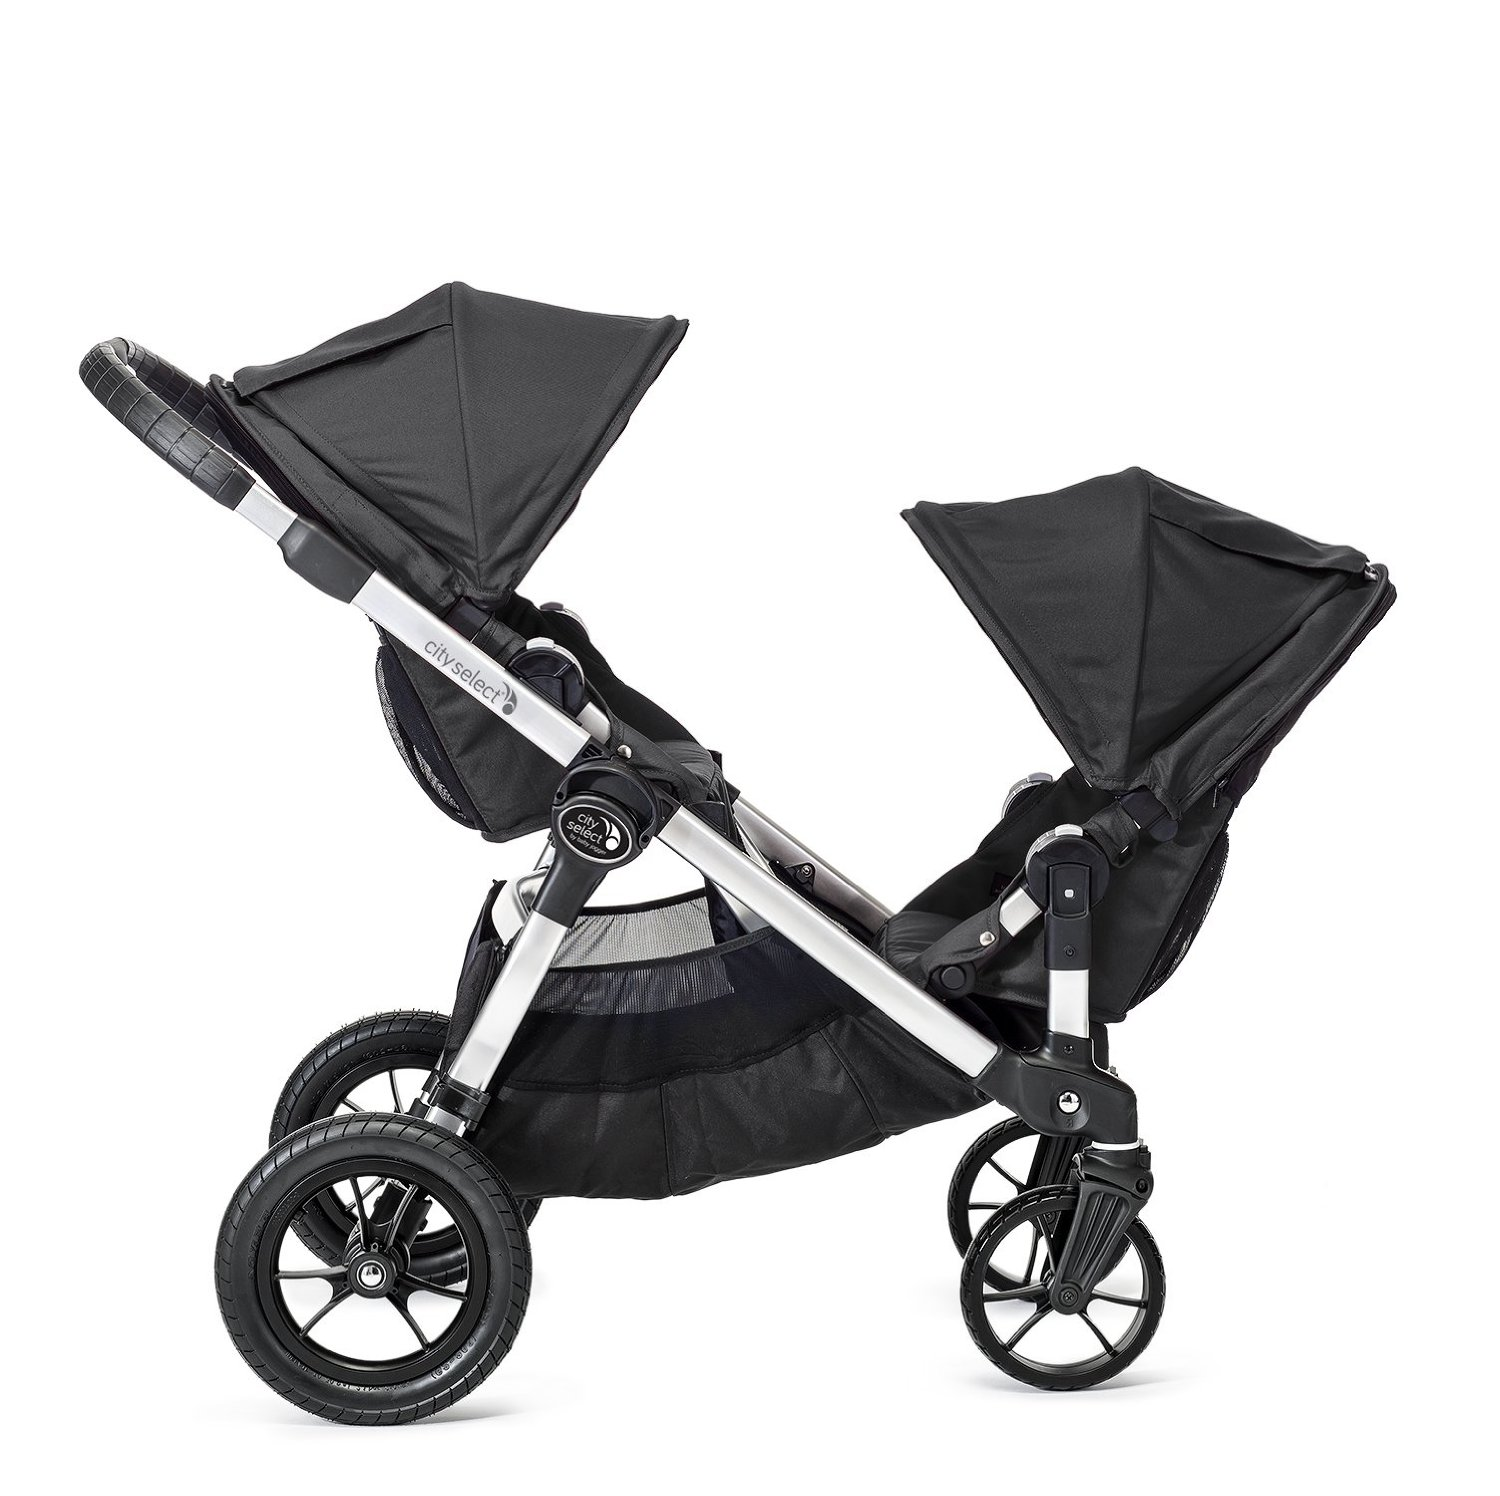 Perky Baby Jogger City Select Stroller Rent Baby Jogger City Select Stroller Victoria City Select Stroller Second Seat City Select Stroller Lux baby City Select Stroller